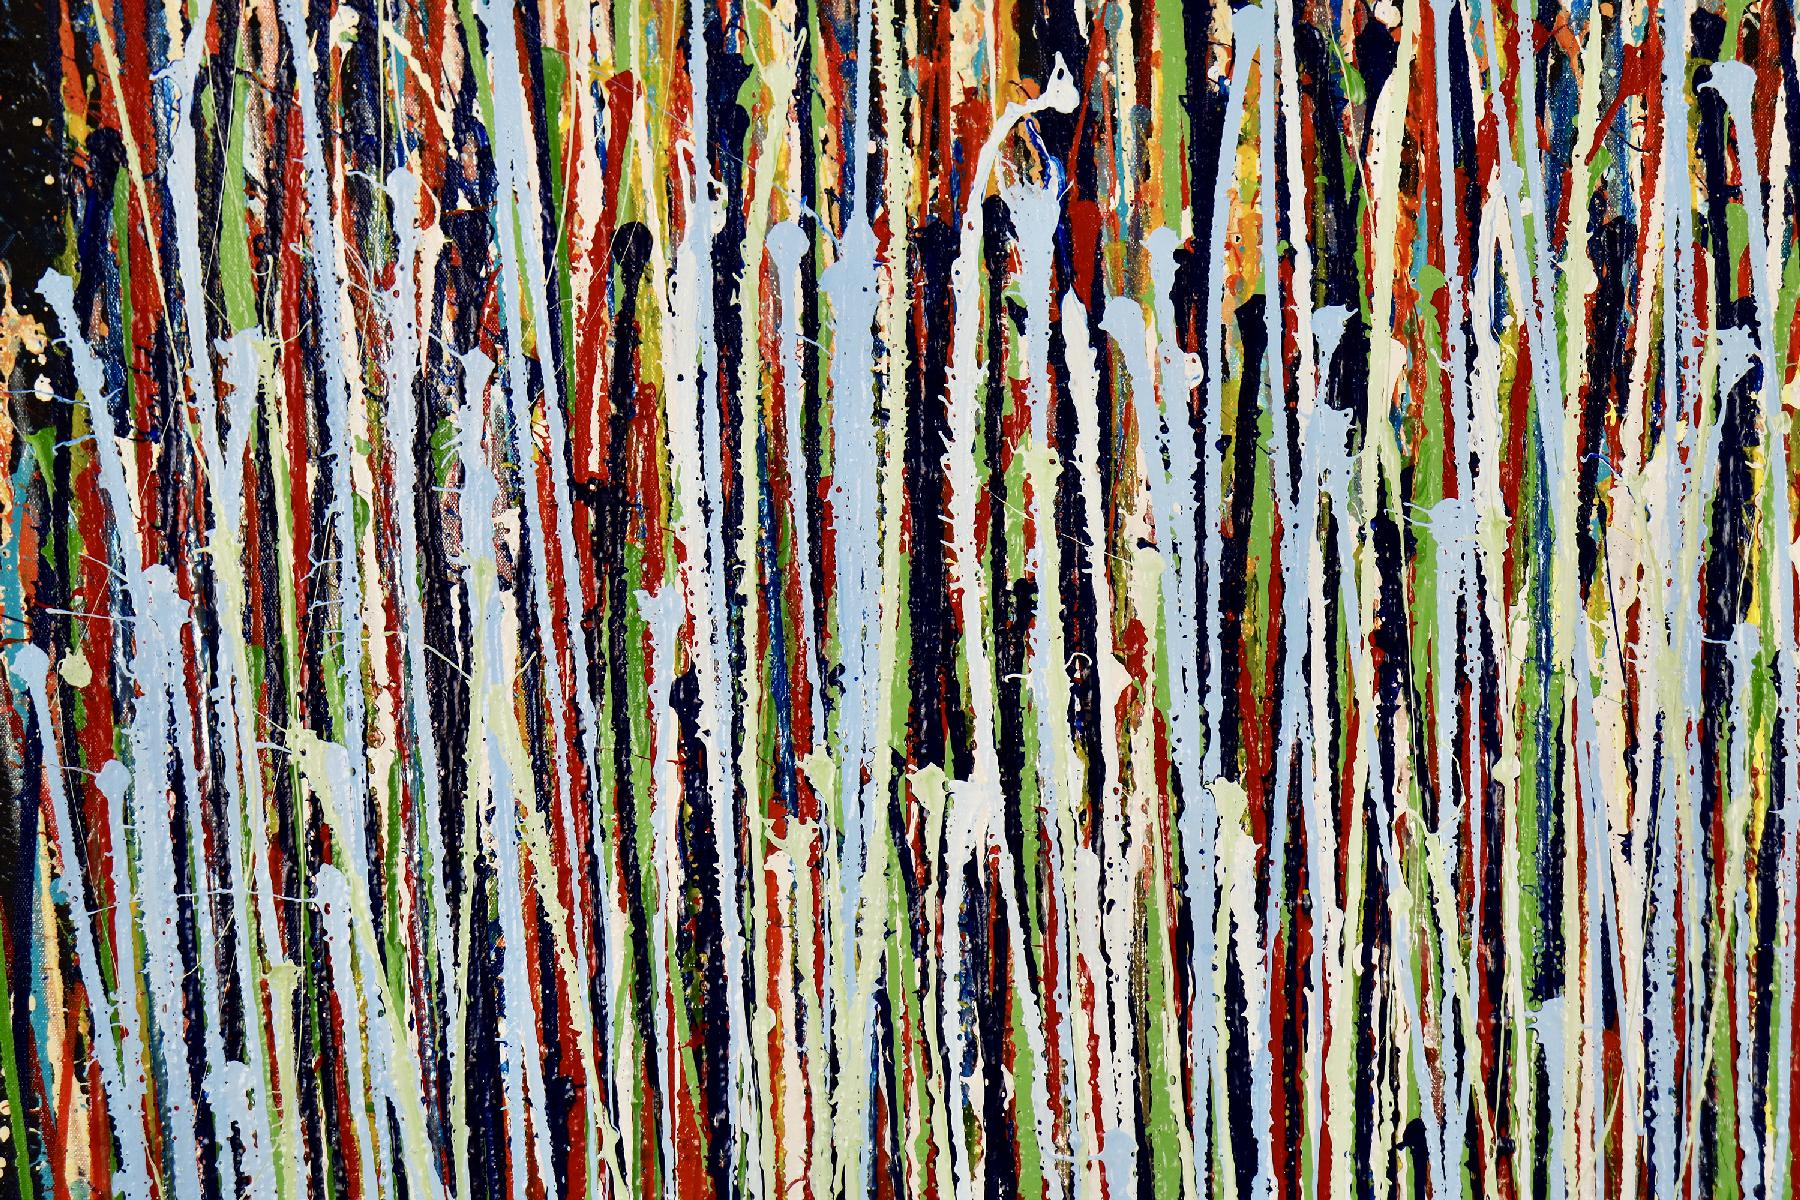 A sinful garden (anochecer) 2 | Inspired by nature abstract (2020) Acrylic painting by Nestor Toro